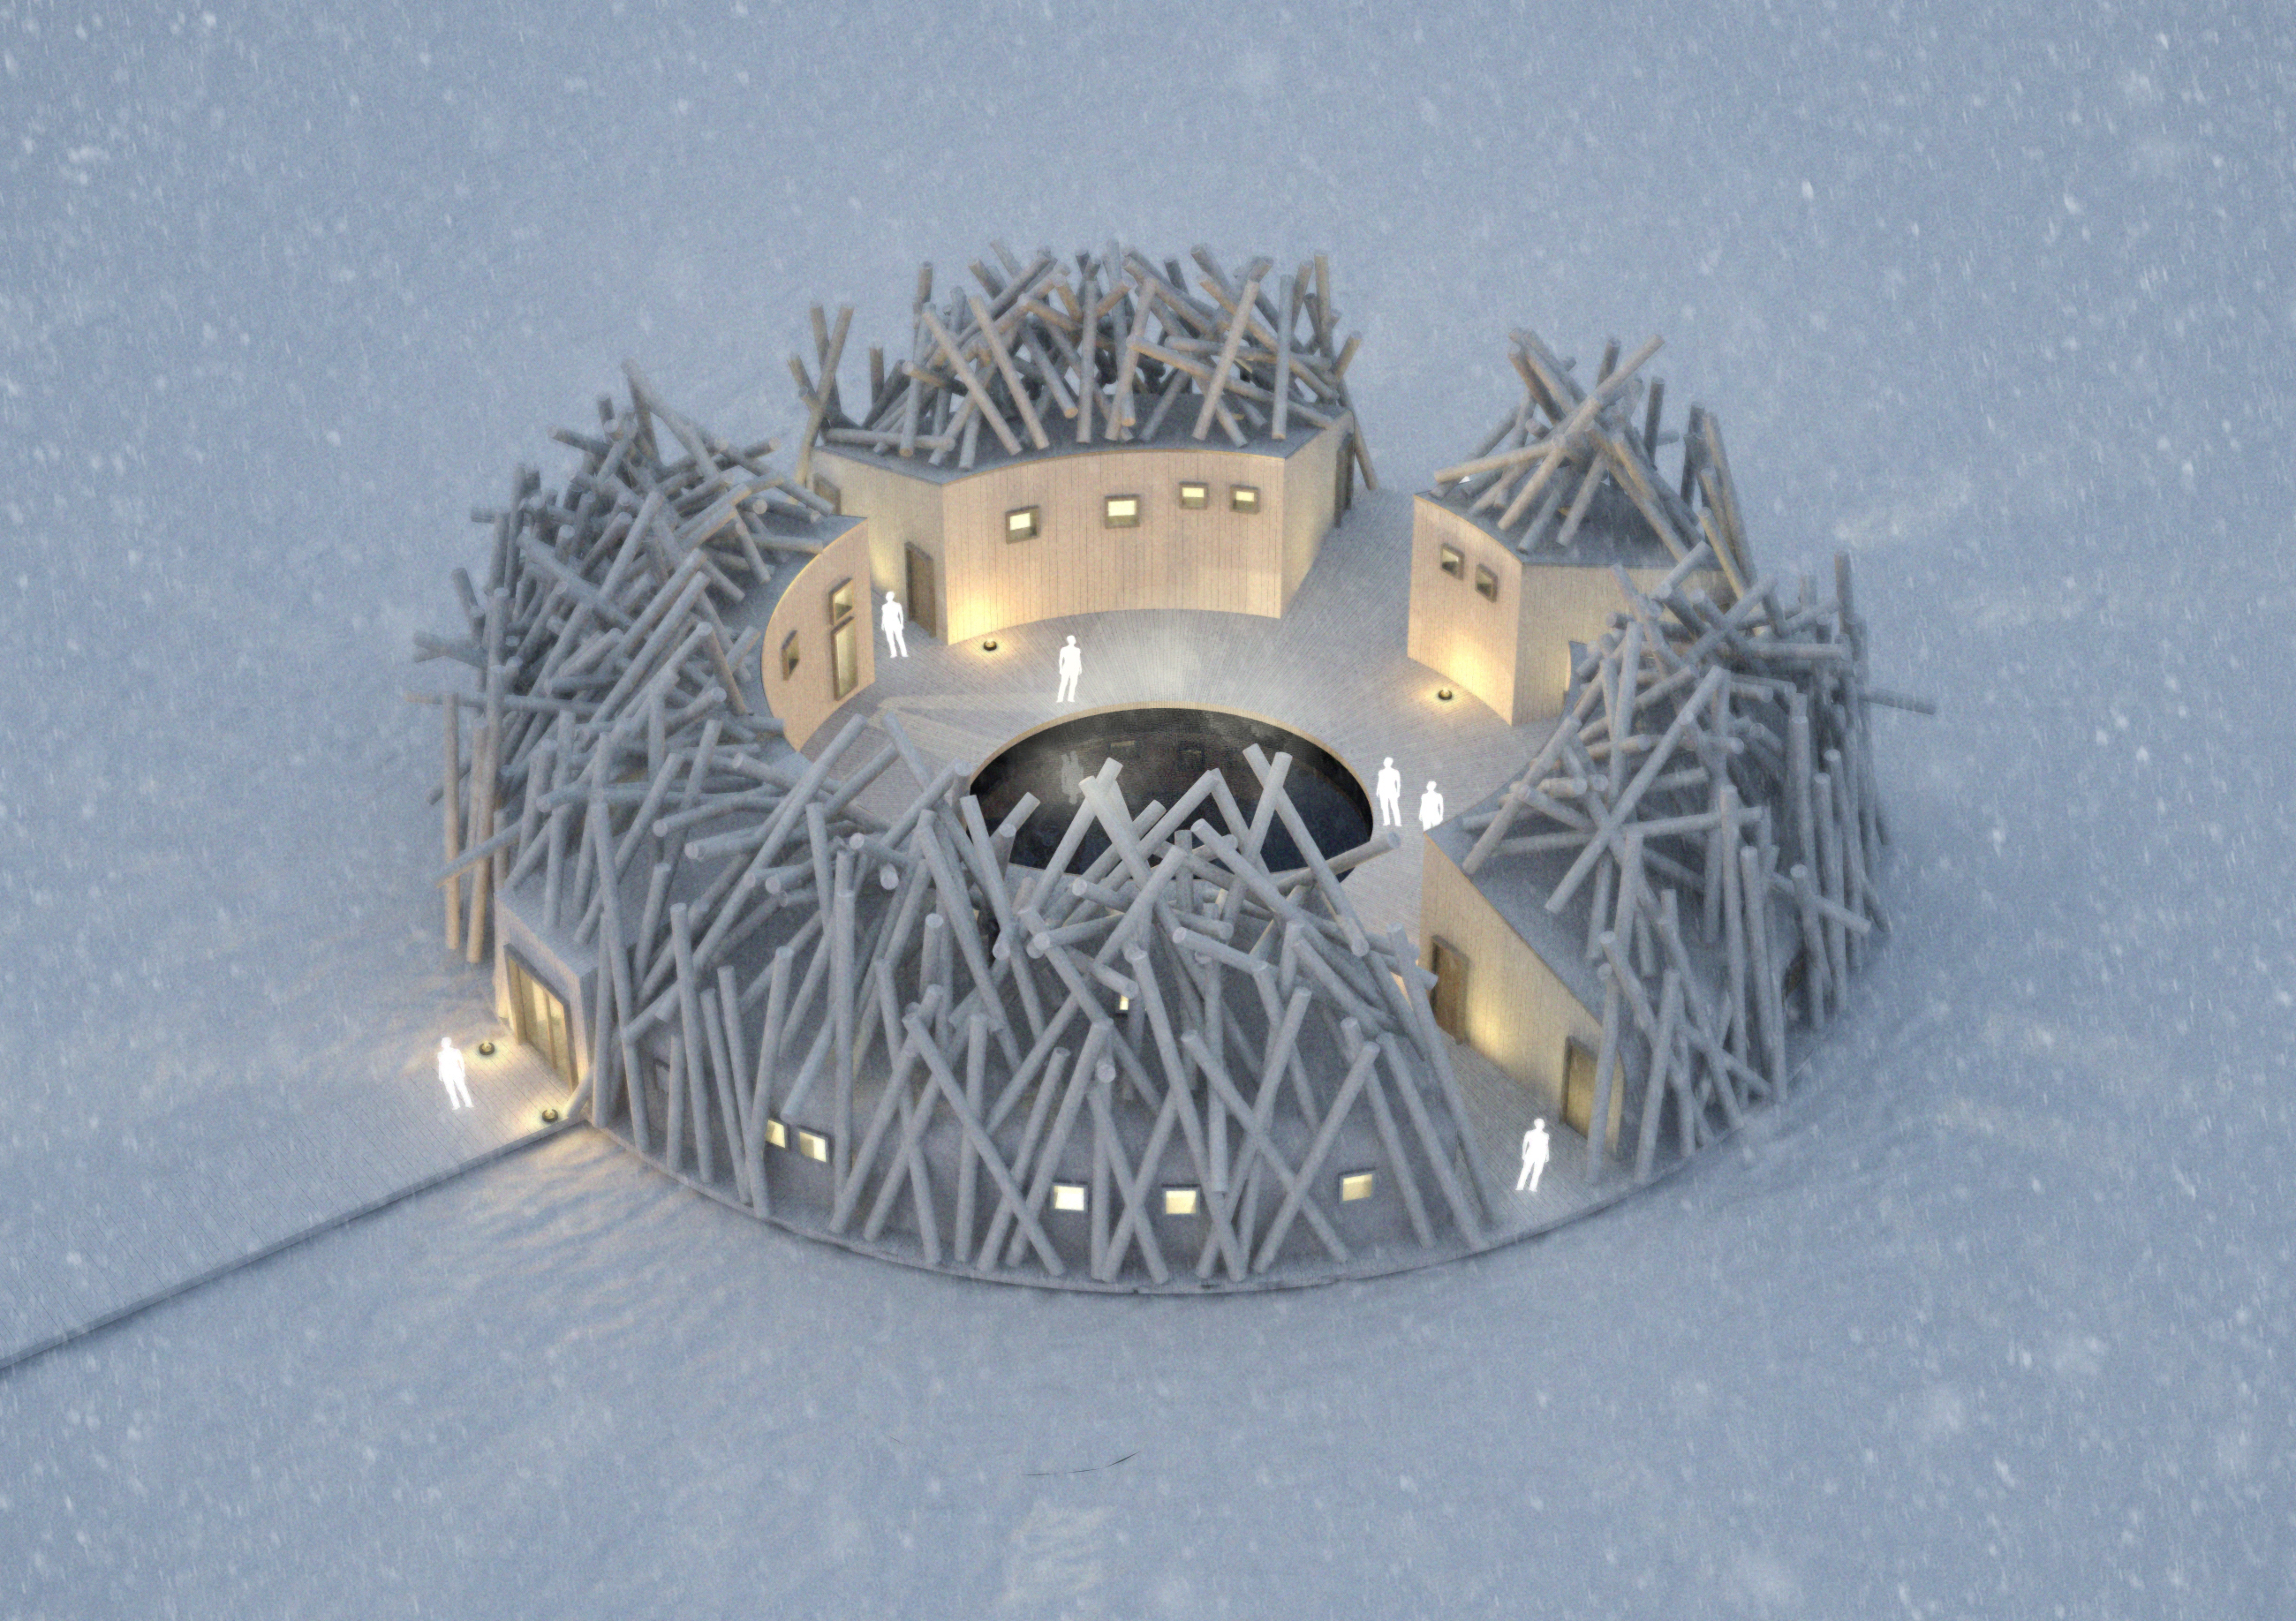 Rendering of an aerial view of The Arctic Bath Hotel and Spa in the winter.